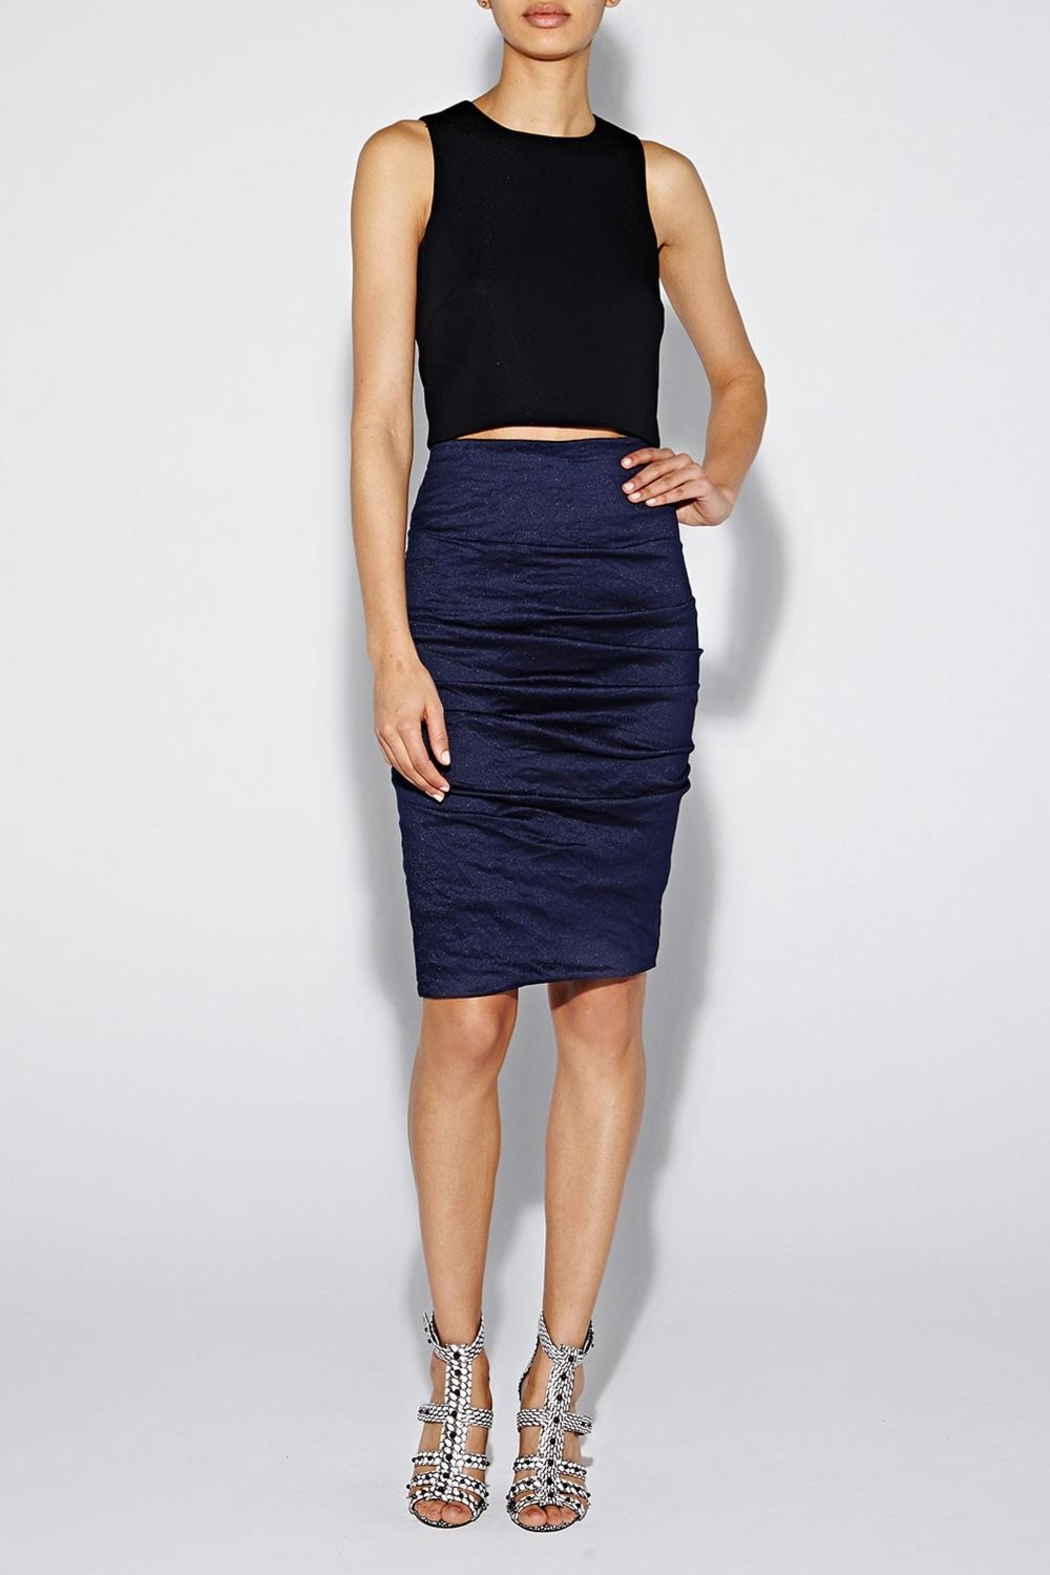 Nicole Miller Flattering Pencil Skirt - Front Cropped Image